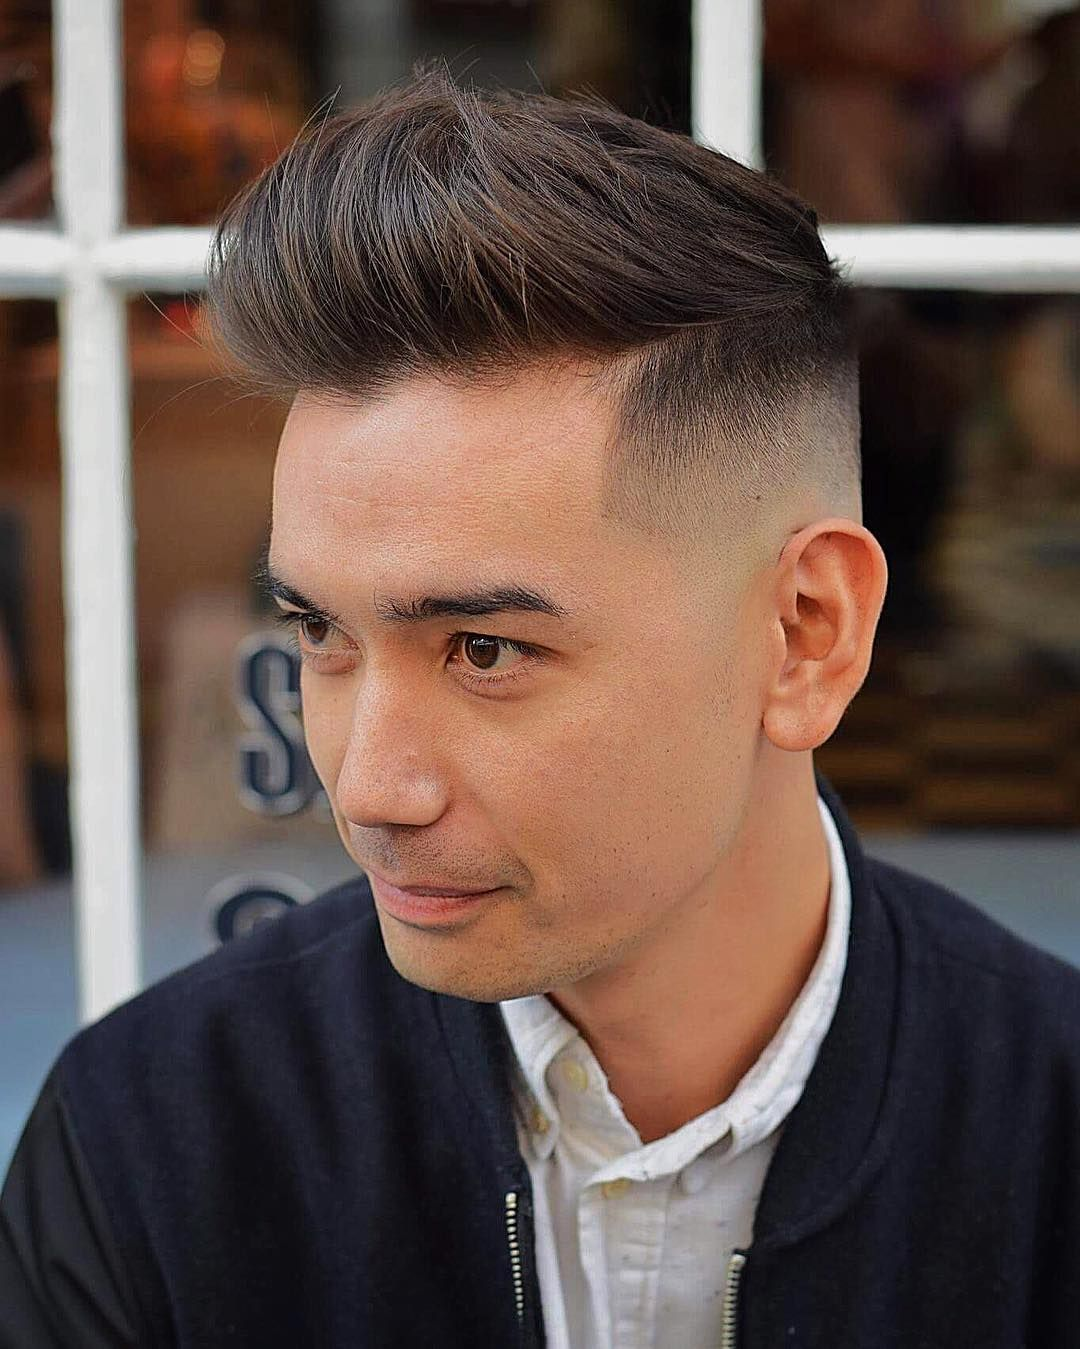 Mens haircuts with receding hairline best menus haircuts  hairstyles for a receding hairline  hair